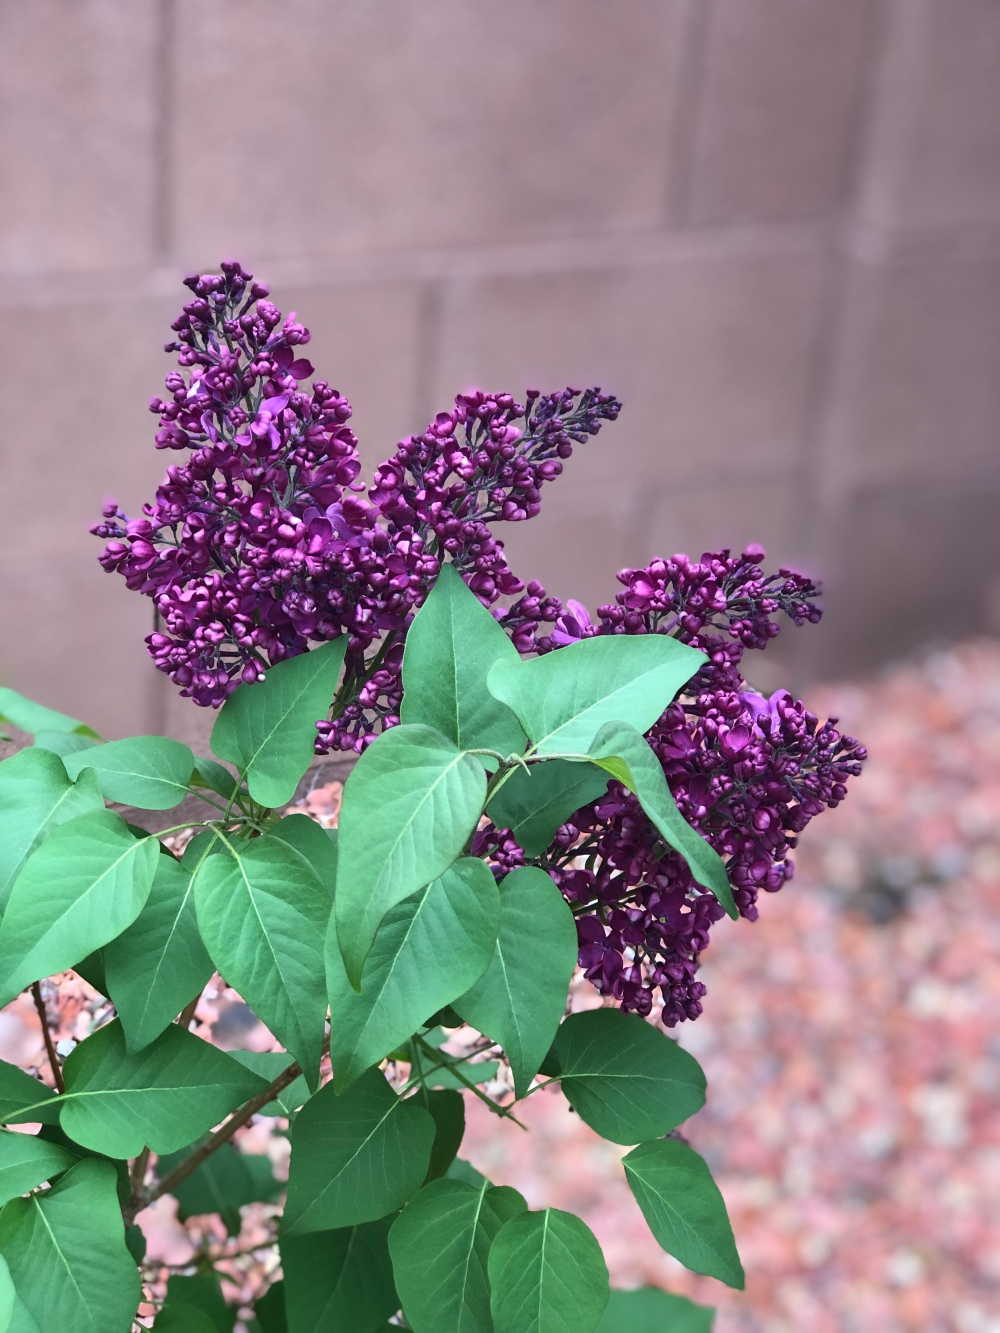 Close up image of a lilac bush with purple lilac flowers.